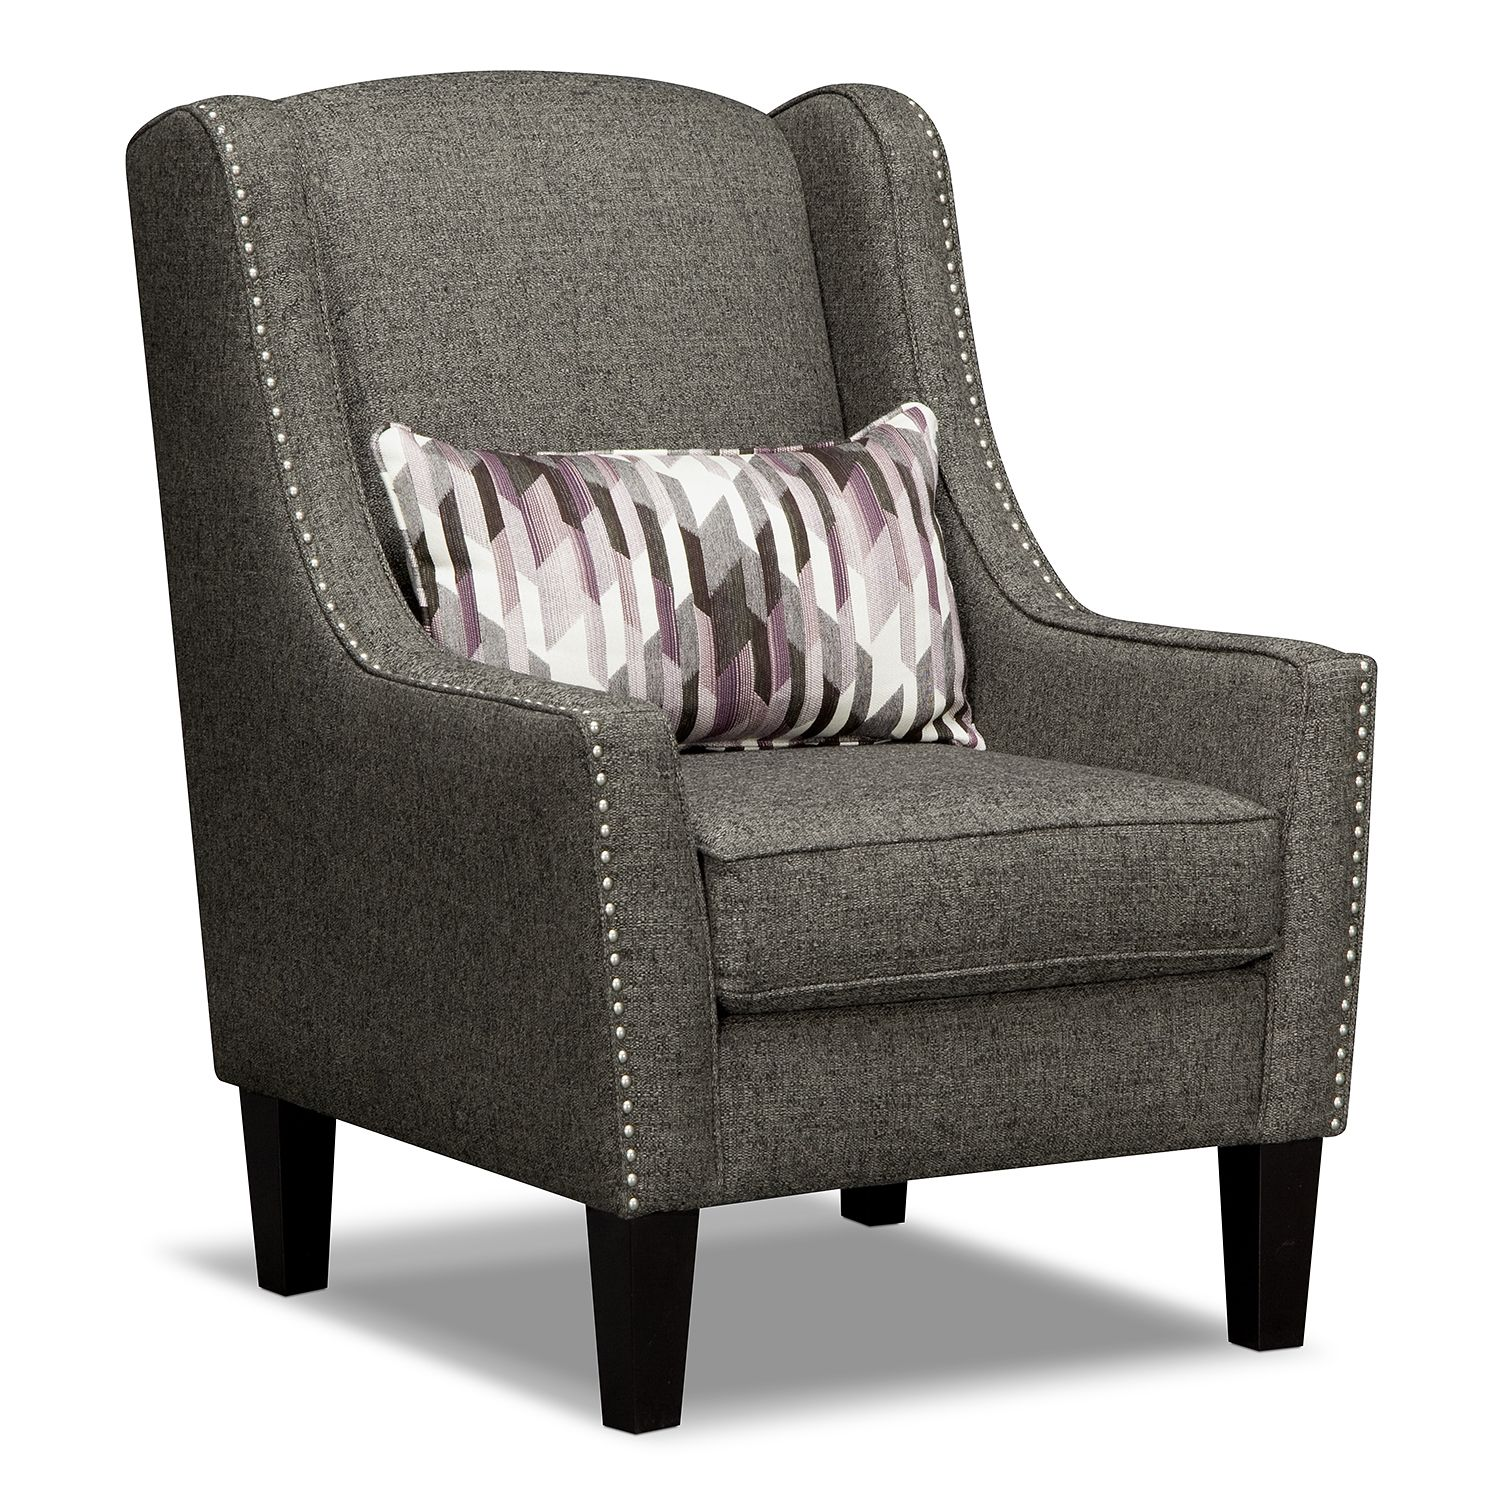 Furniture Unique Small Accent Chairs With Arms Decor For Small Accent ChairsLiving Room